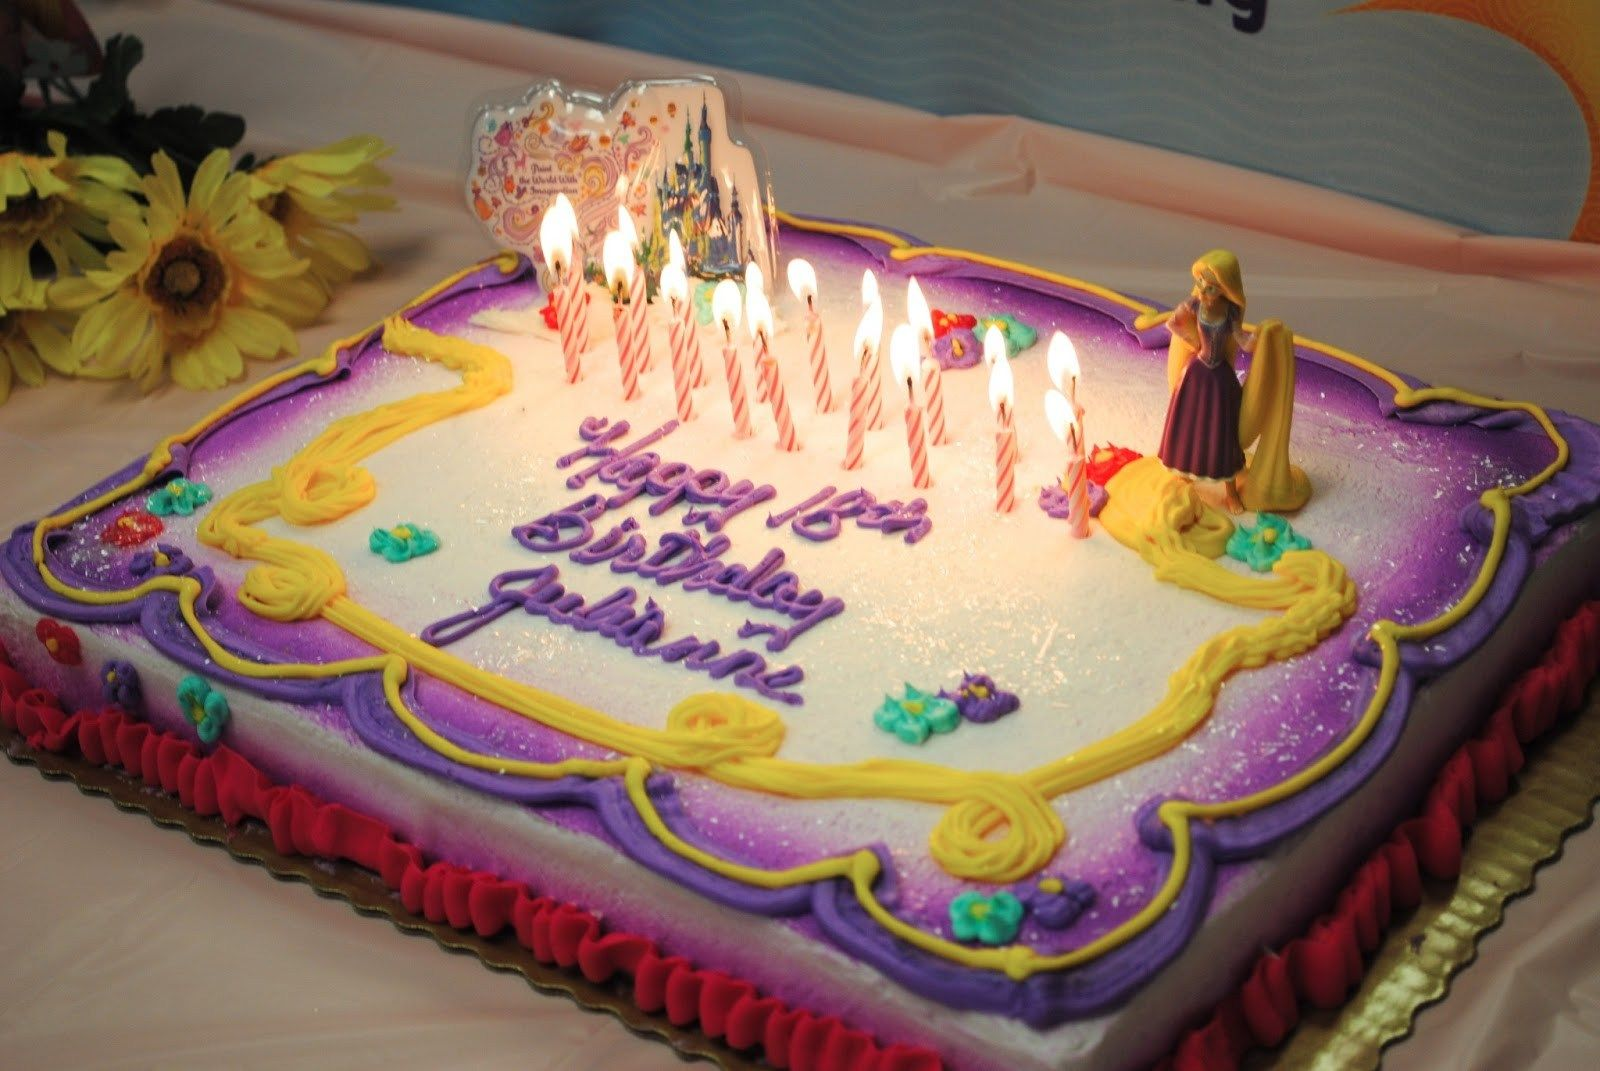 25 Creative Picture Of Kroger Bakery Birthday Cakes Ideas Cute For Sweet Your Child Moment